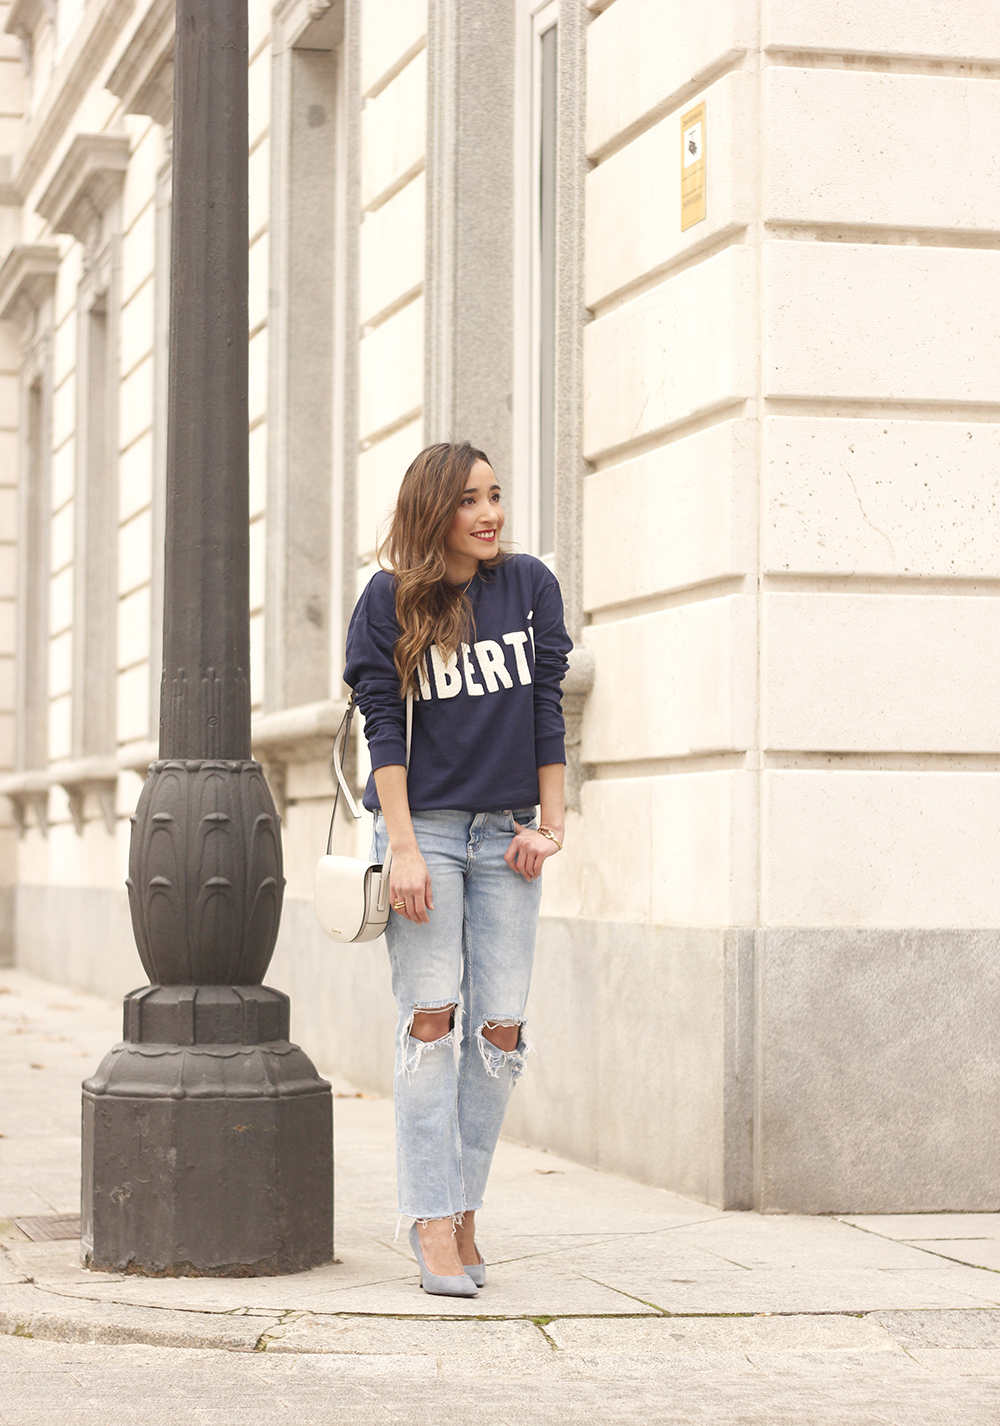 Sweatshirt ripped jeans clavin klein white bag high heels street style outfit 20192